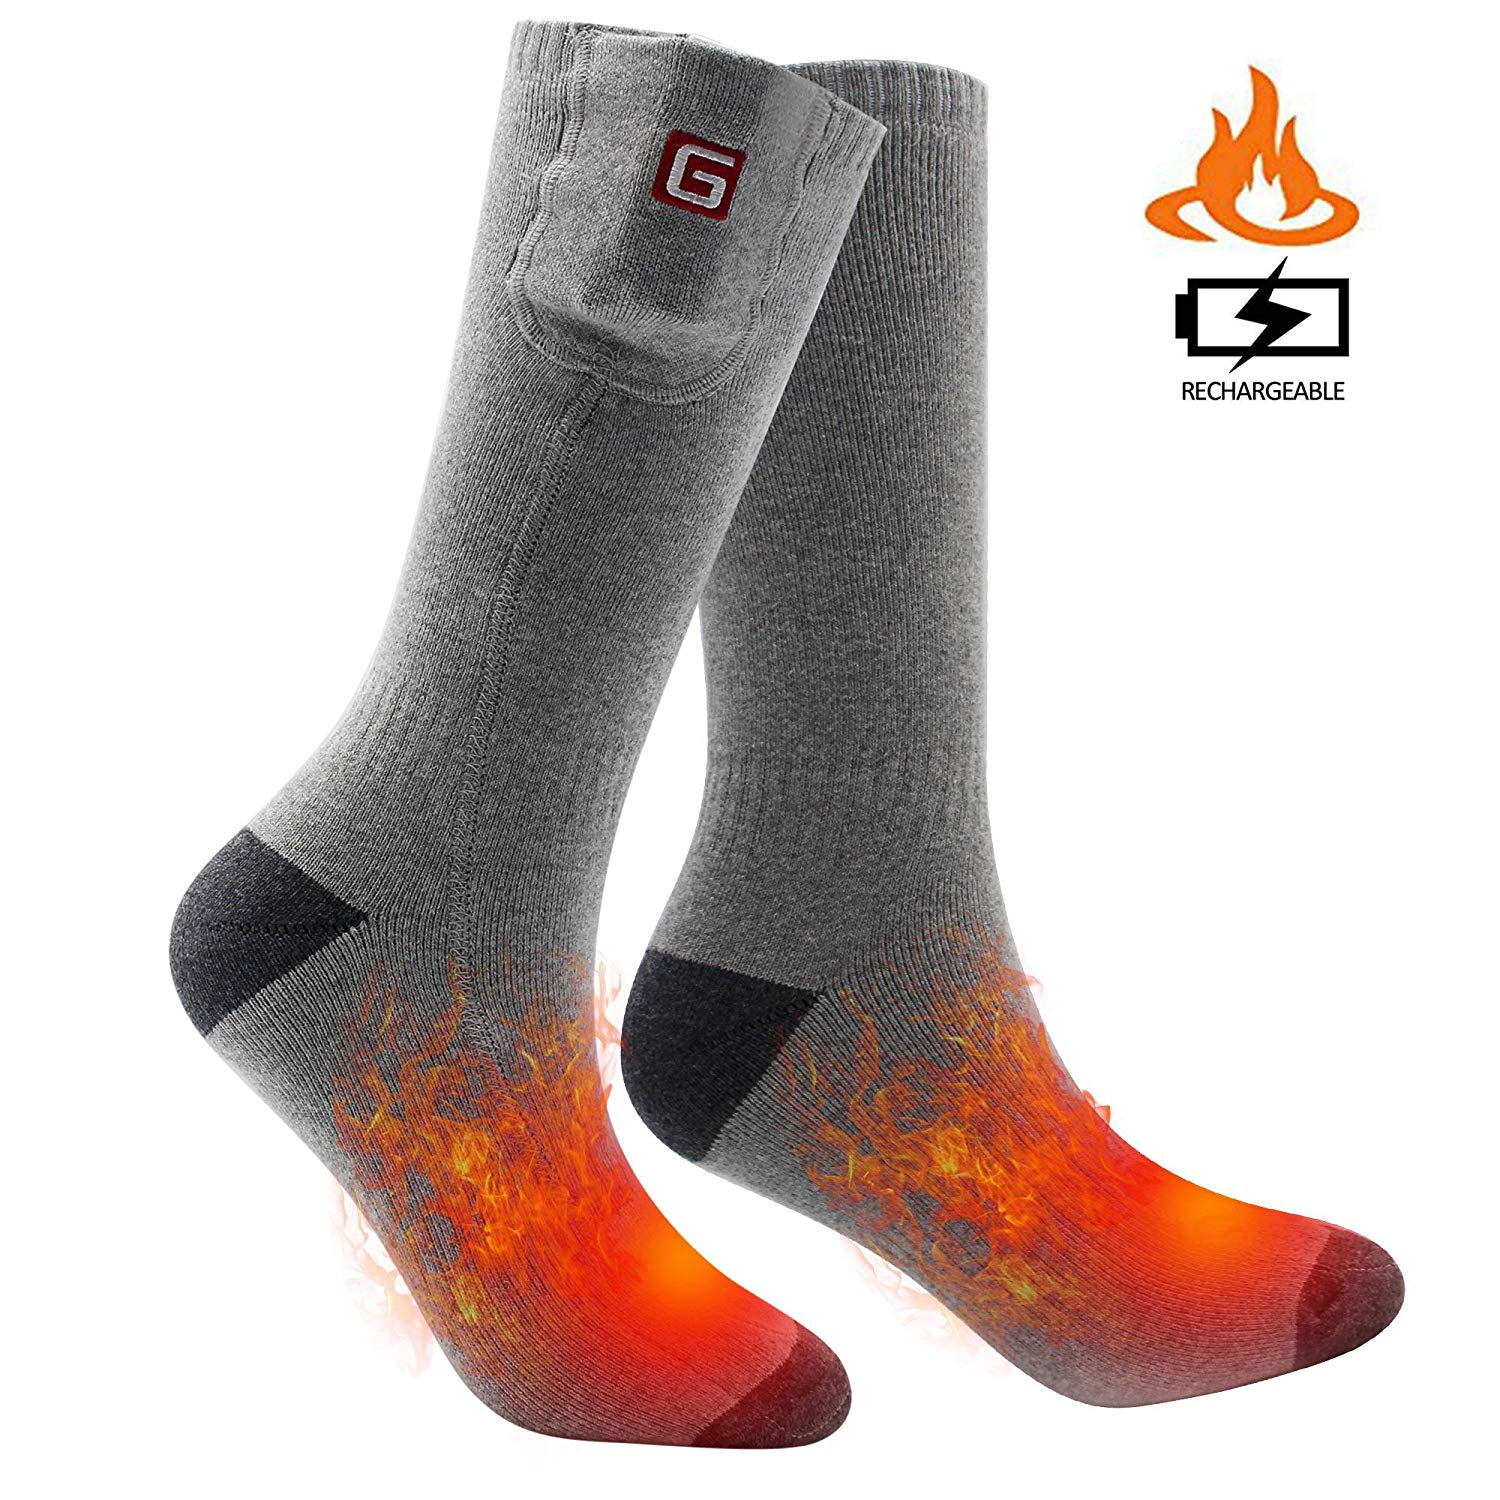 fe8a5538b Get Quotations · SVPRO Rechargeable Electric Battery Heated Socks Cold  Weather Thermal Socks Sport Outdoor Warm Winter Socks Men